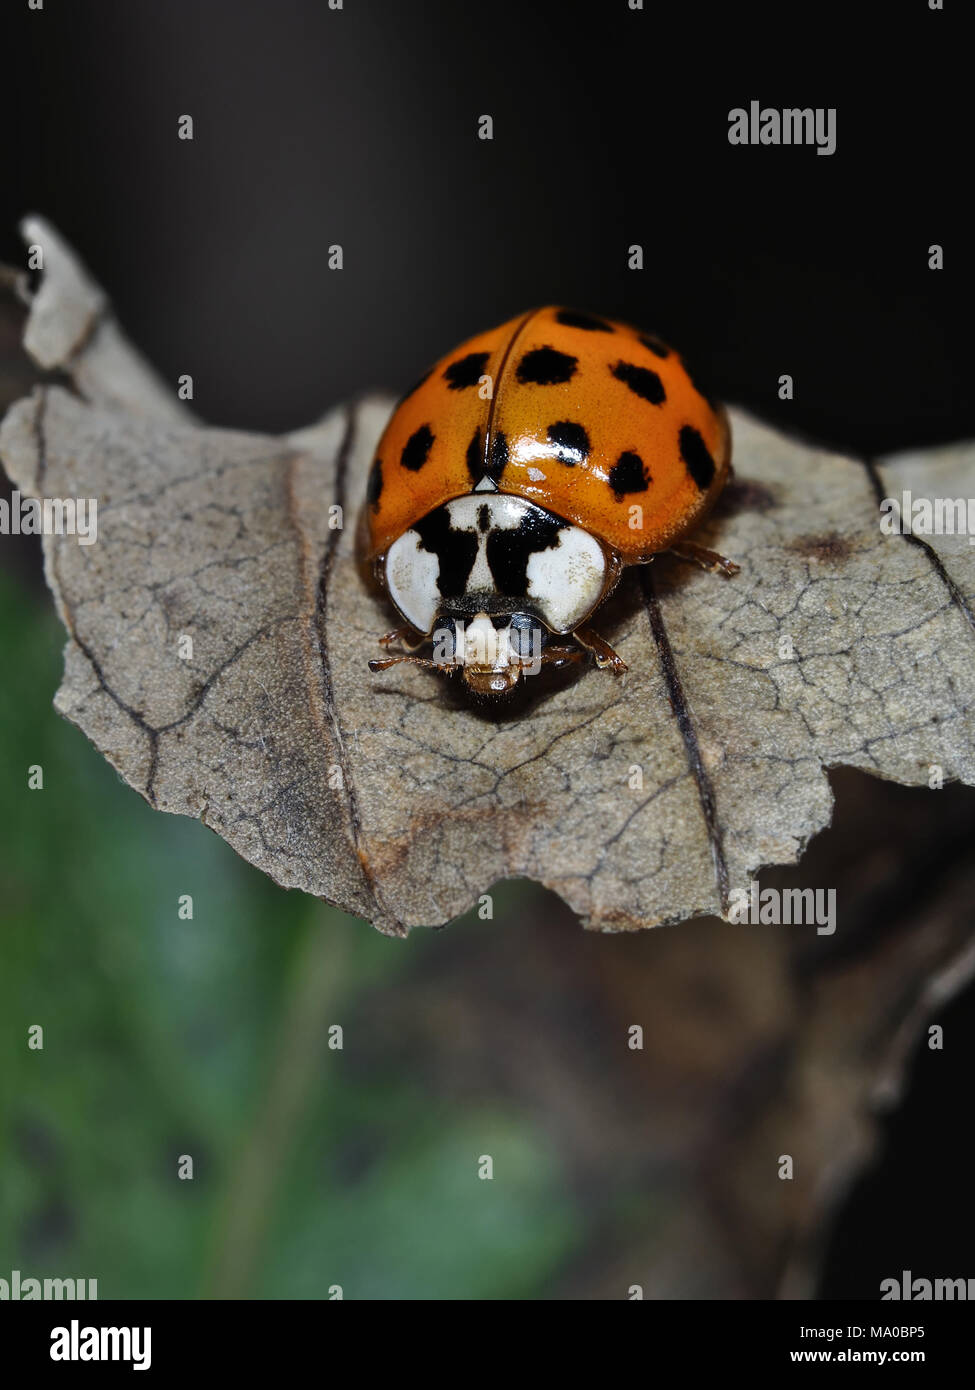 Asian ladybeetle (Harmonia axyridis) on a leaf, close-up view - Stock Image